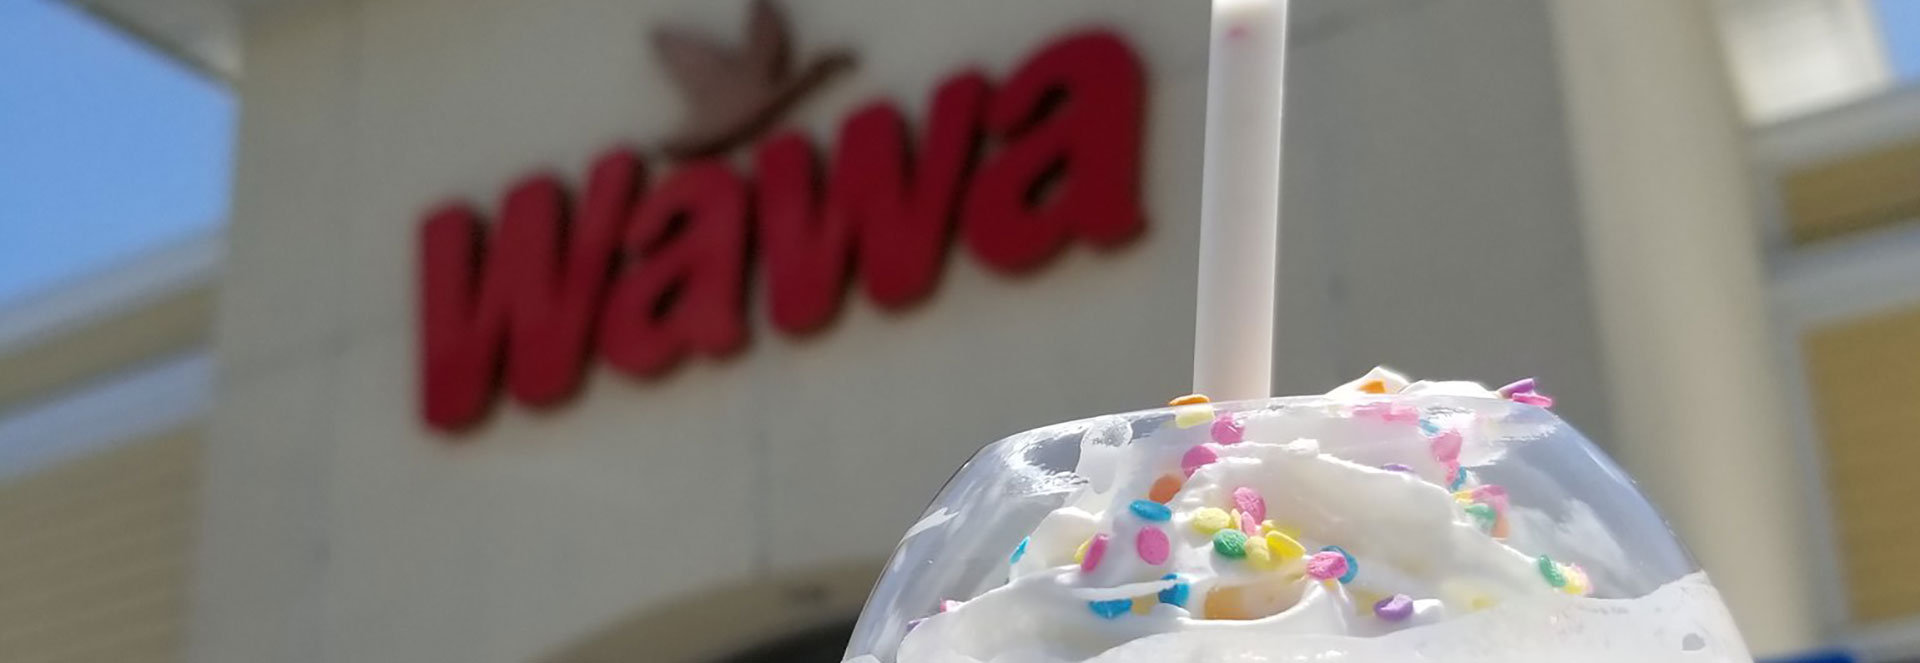 Wawa Celebrates Anniversary With Secret Menu